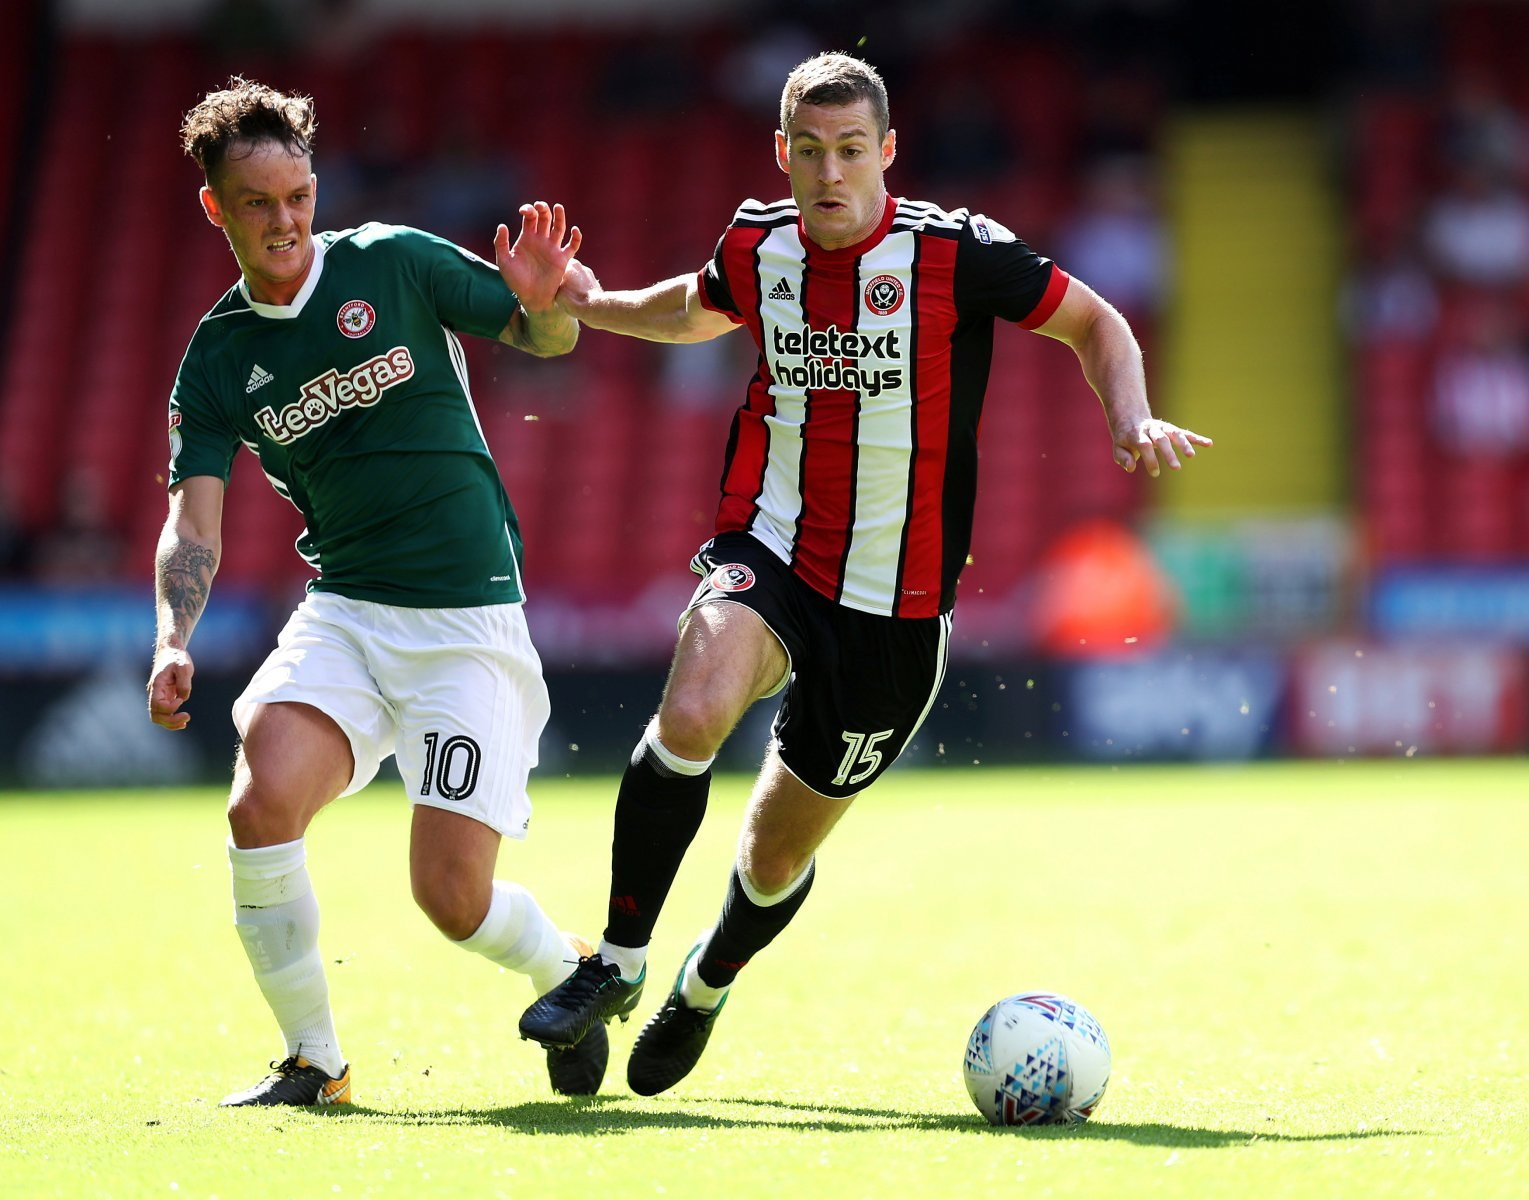 Sheffield United: Fans react to Paul Coutts' passing stat for Fleetwood Town